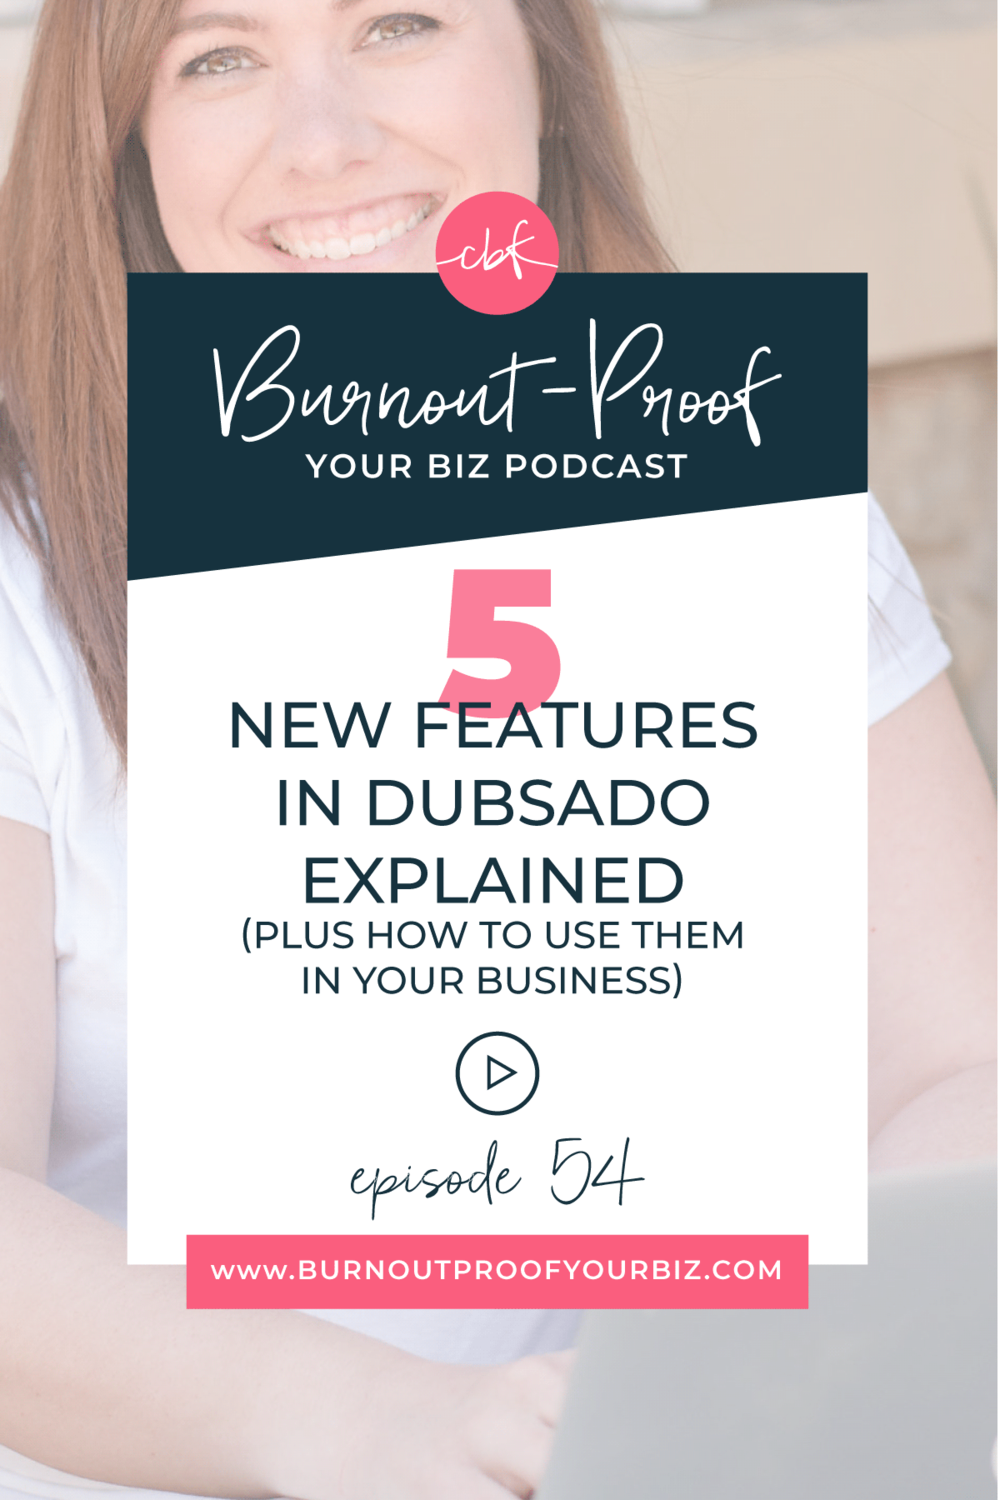 5 New Features in Dubsado Explained (Plus How to Use Them in YOUR Biz) on the Burnout-Proof Your Biz Podcast with Chelsea B Foster | Episode 054 - Dubsado's New Features: What to Know & How to Use Them In YOUR Biz | Learn how to run your biz and live your dream life on your own terms without the fear of burnout.  |||  Business Coach | Workflow & Productivity Specialist | Dubsado - a CRM for Creatives | Dubsado | Dubsado for Coaches | Dubsado for Photographers | Dubsado for Bloggers | Dubsado for Network Marketers | Dubsado for Graphic Designers | Dubsado New Features | Overwhelmed | Stressed-out | Journaling Activity | Creative Entrepreneur | Creative Influencer | Productivity | Dream life | Freedom Lifestyle | Having a business that supports your dream life | Client onboarding | Leads tracking |